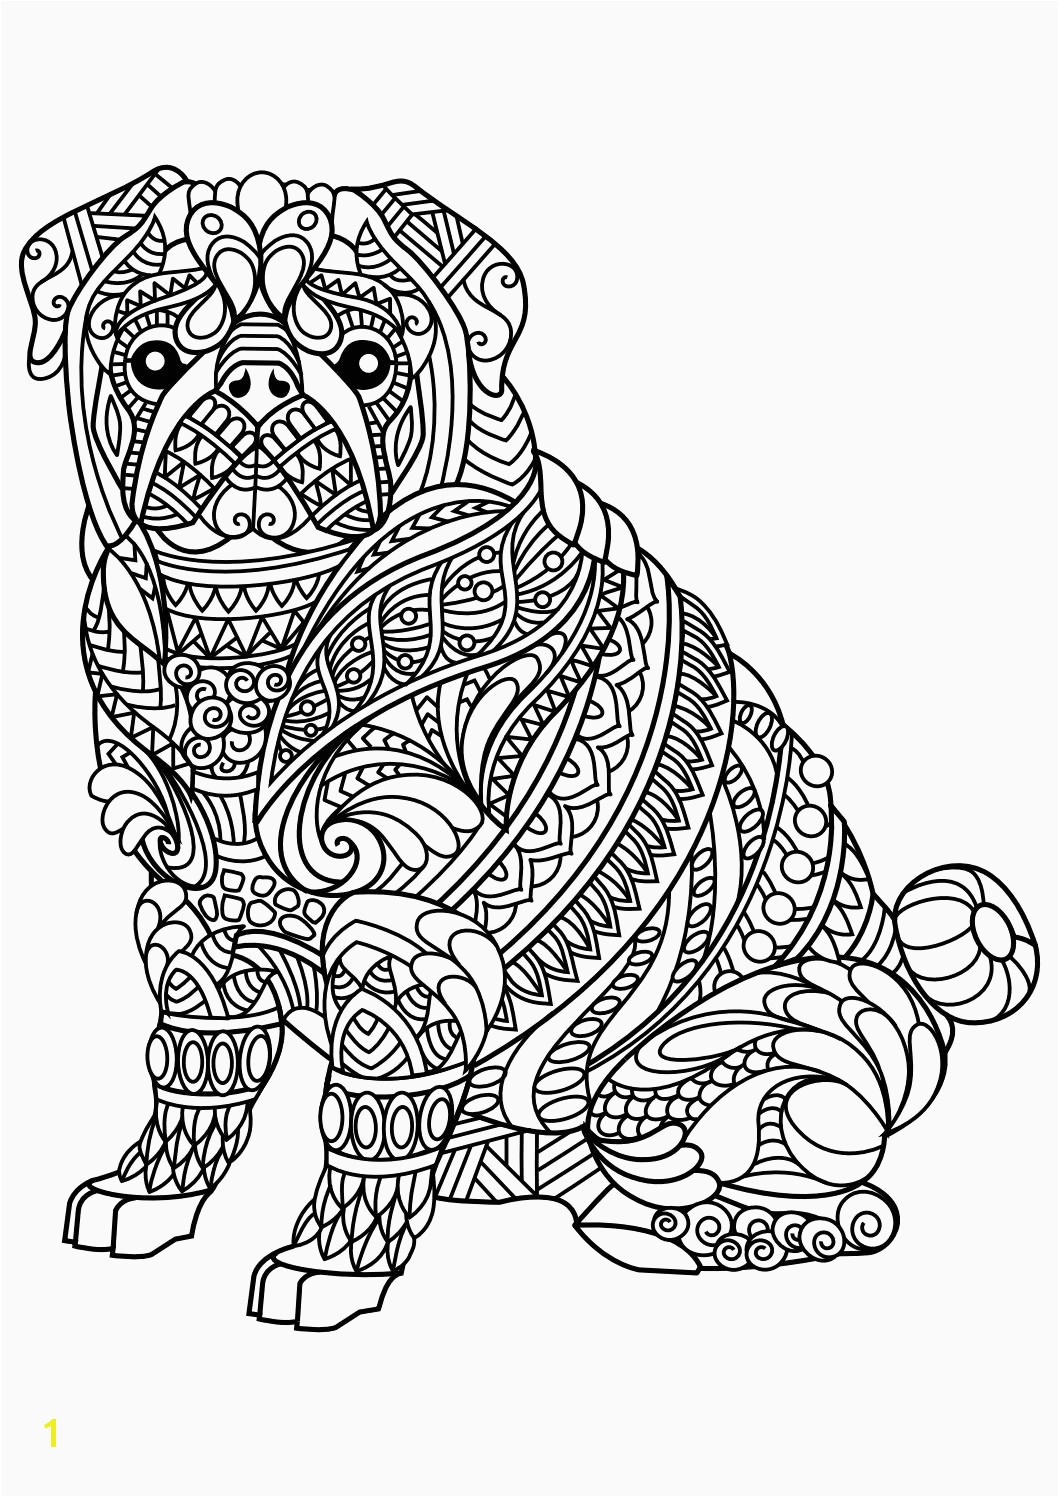 Printable Coloring Pages Zoo Animals Free Printable Realistic Animal Coloring Pages Fresh Best Od Dog